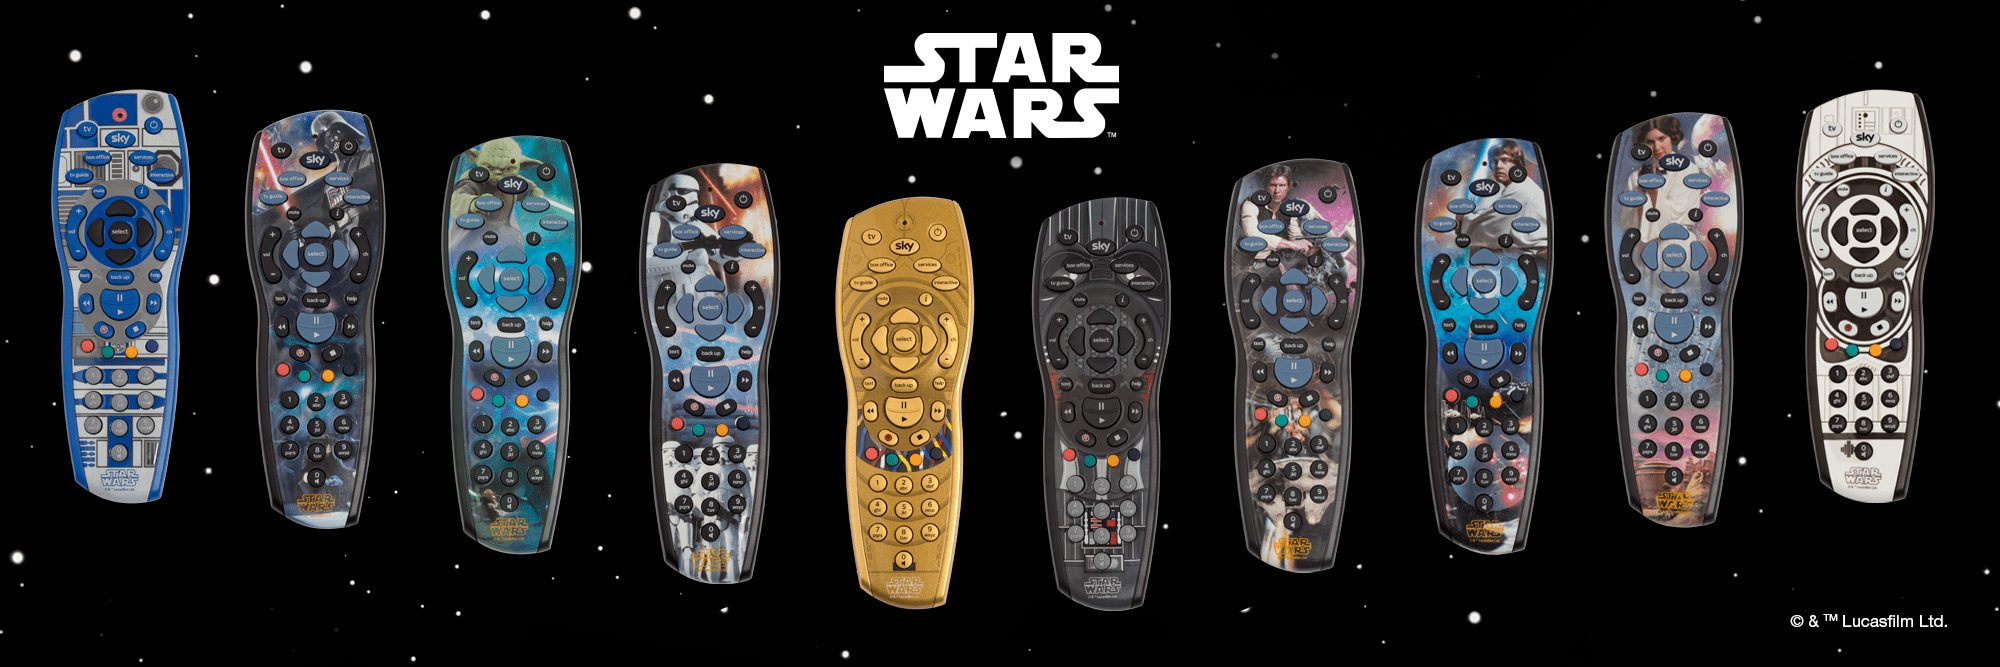 How To Use Your Sky Remote Control Help Tv Box Wiring Diagrams 10 Exclusive Star Wars Hd Remotes